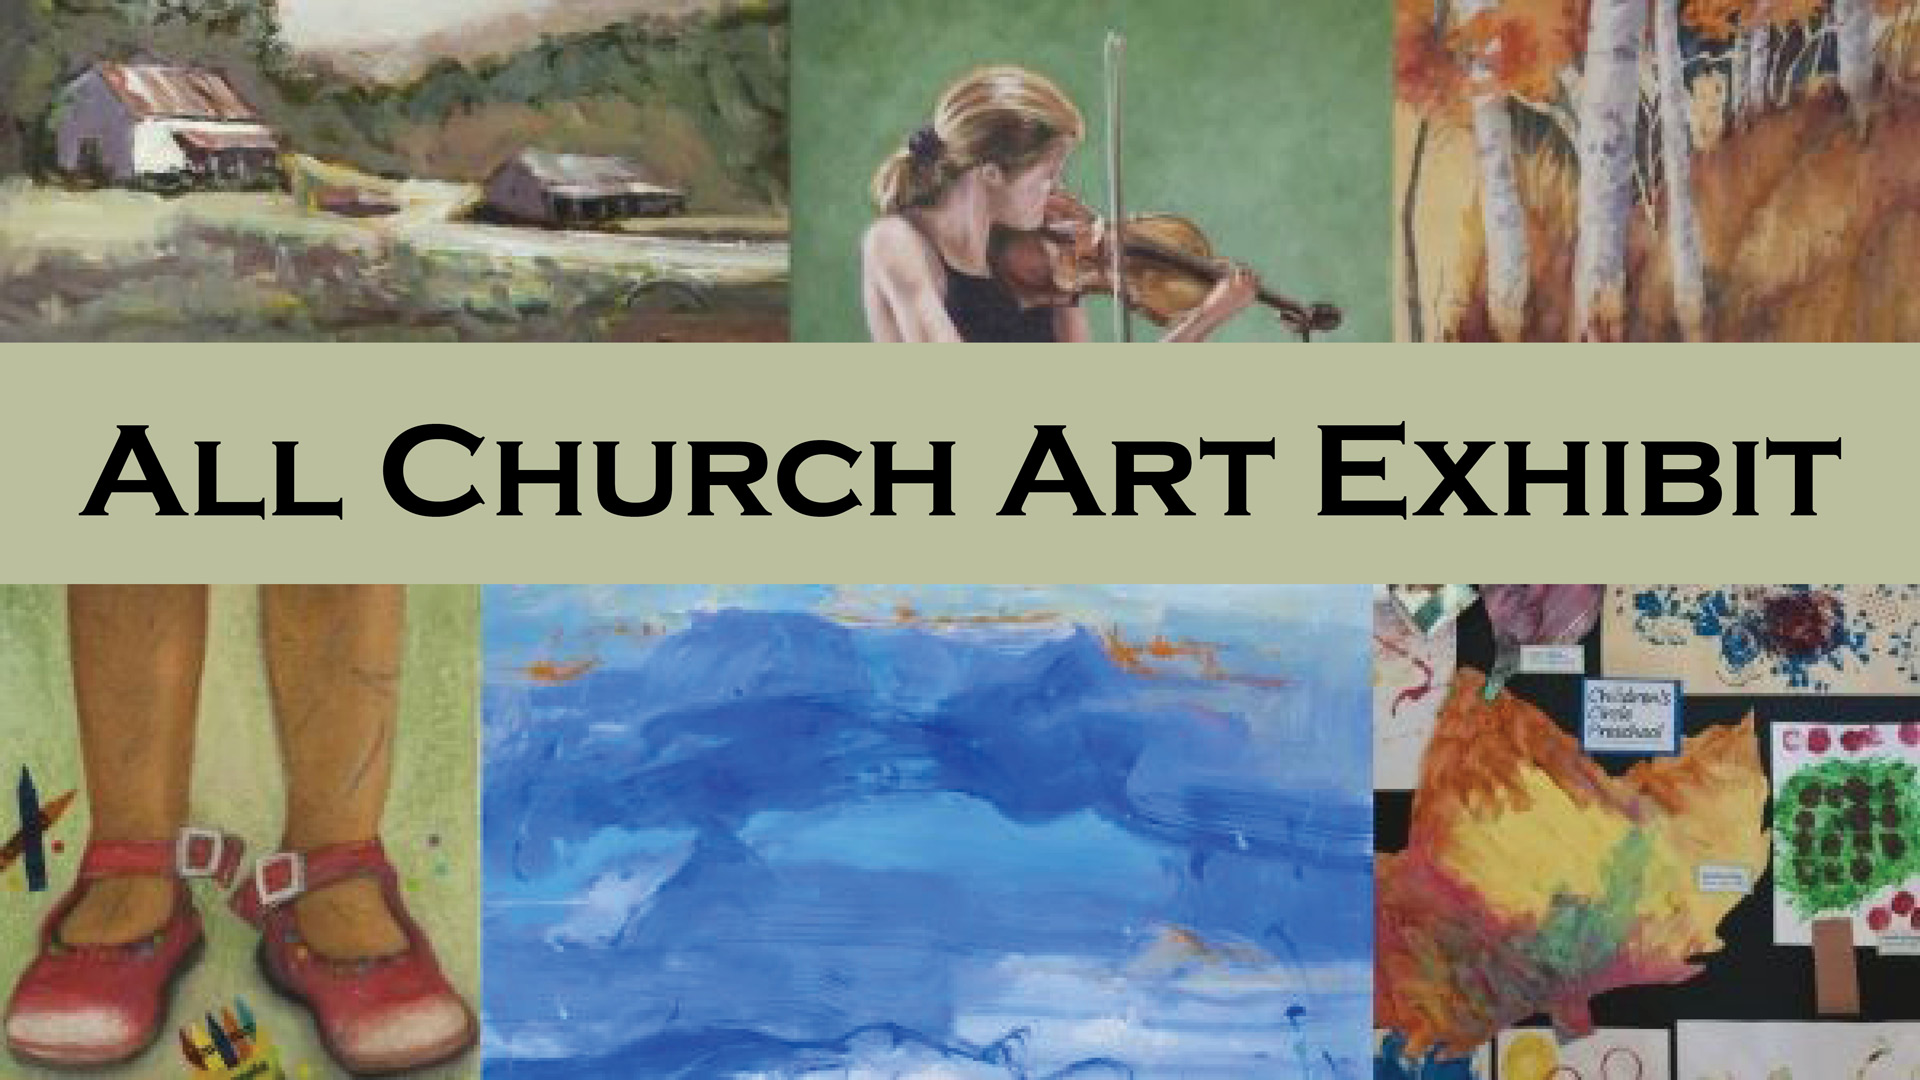 All Church Art Exhibit